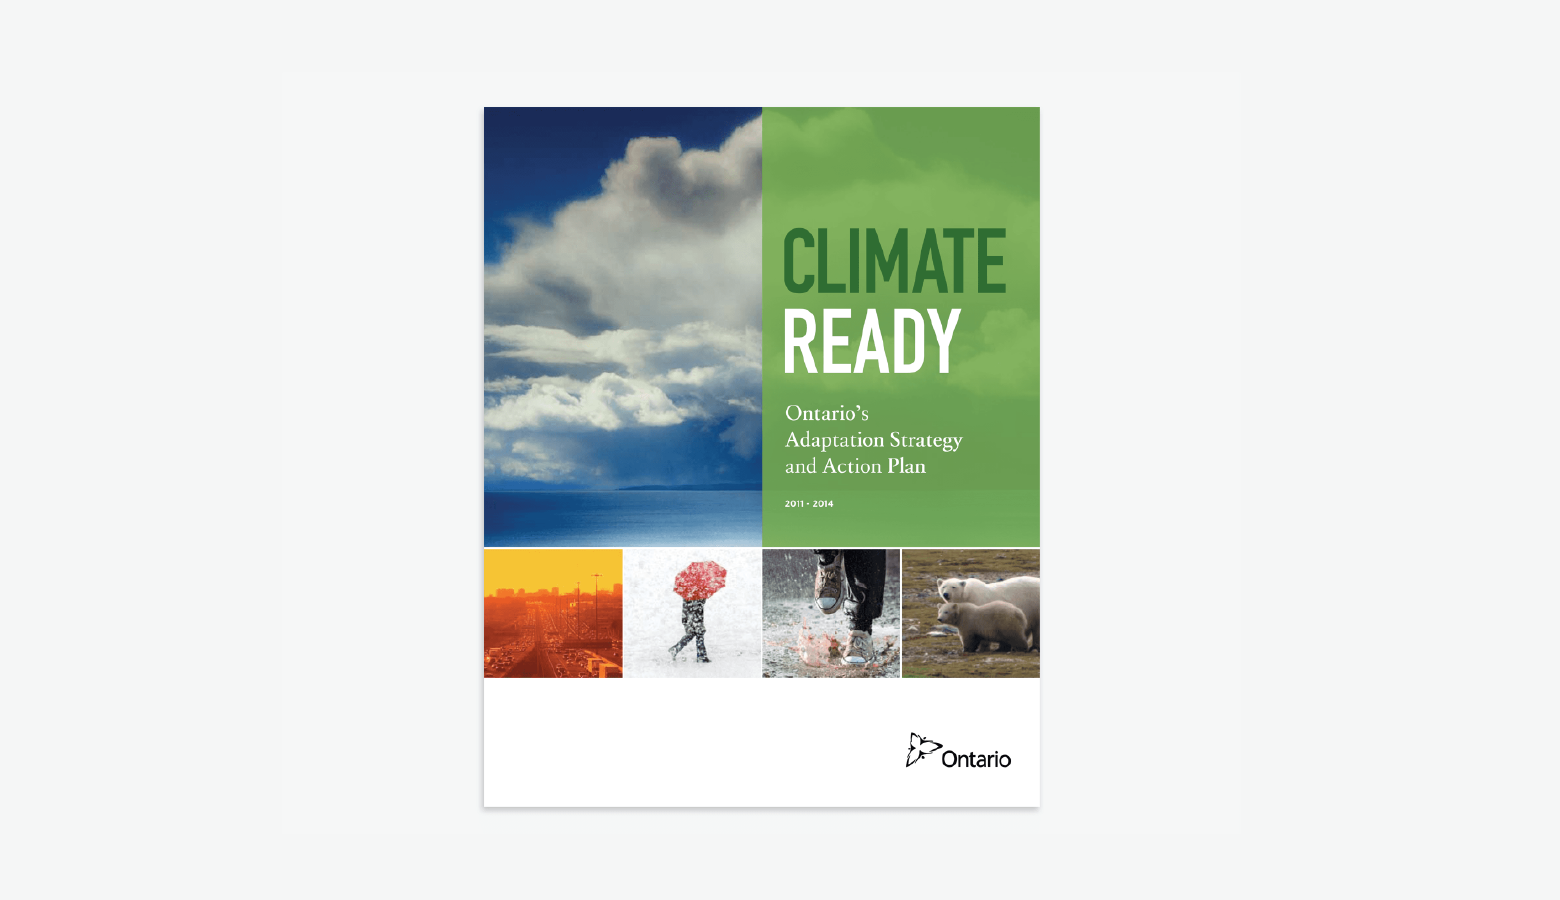 Ontario Ministry of Environment's Climate Change Adaptation Strategy & Action Plan